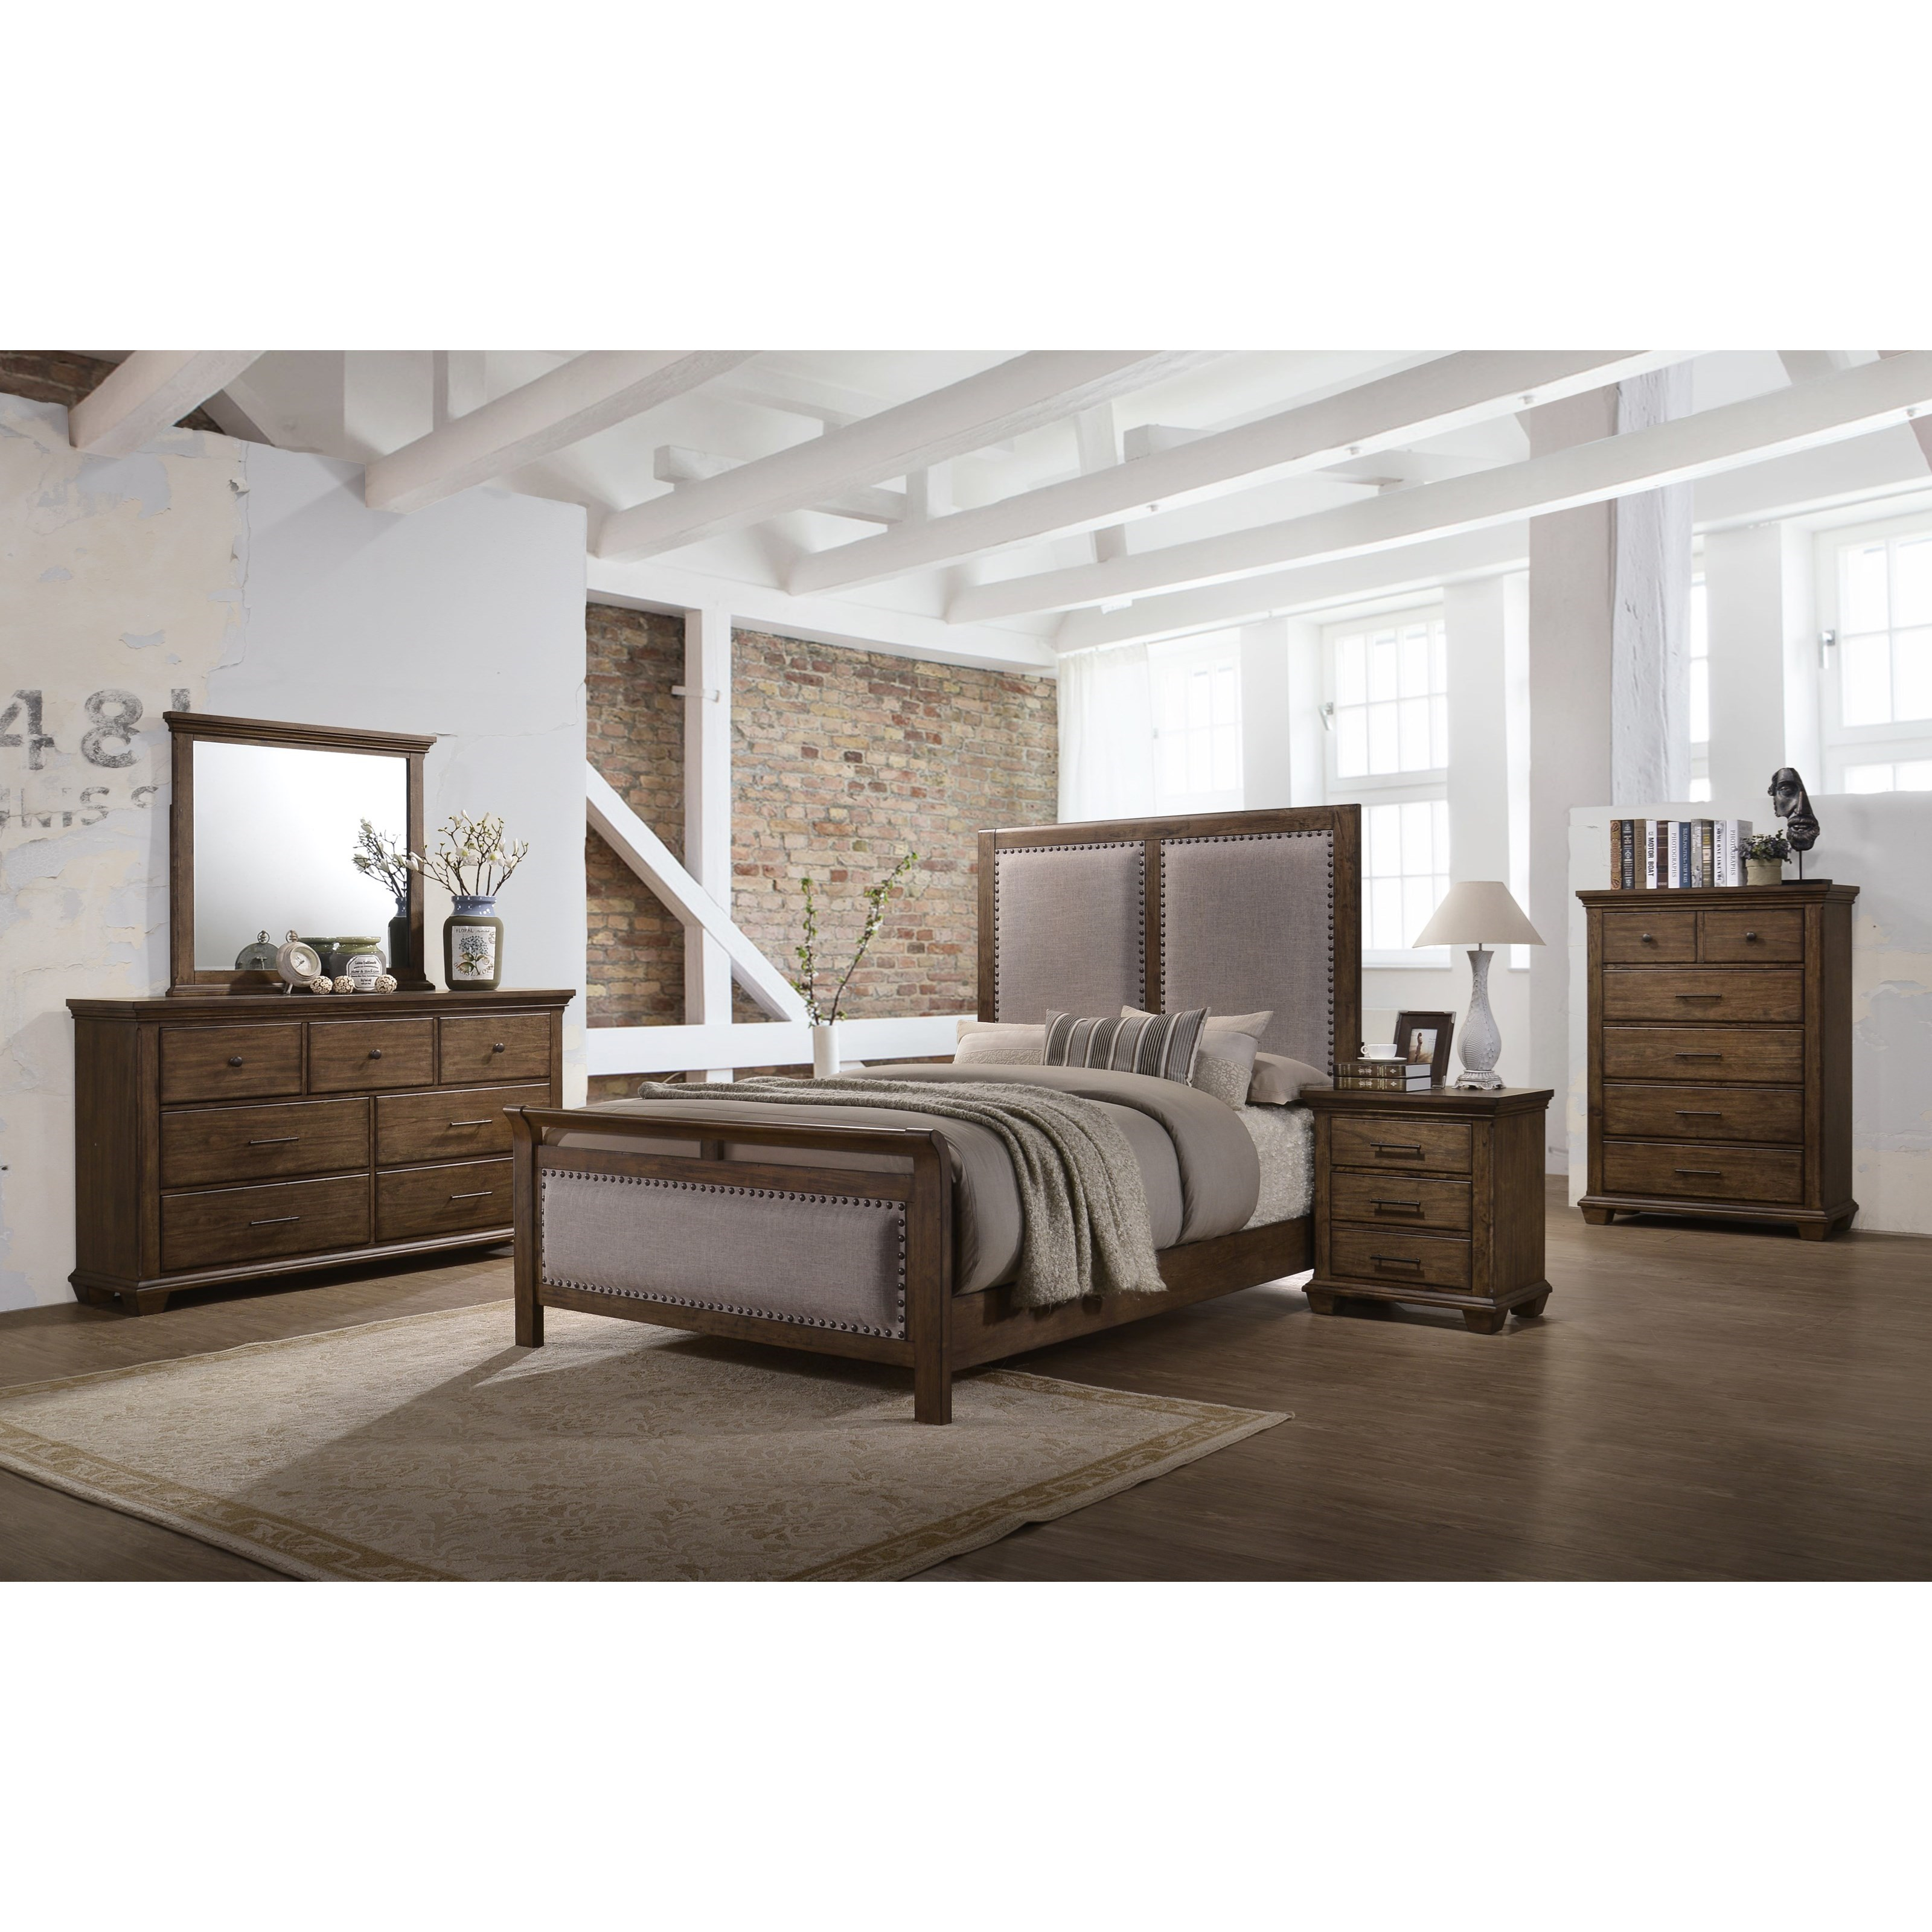 Bedroom Sets El Paso Tx Bedroom Ceiling Styles White Wall Apartment Bedroom Ideas Bedroom Decorating Ideas Plum: United Furniture Industries Carlton 1040 Queen Bedroom